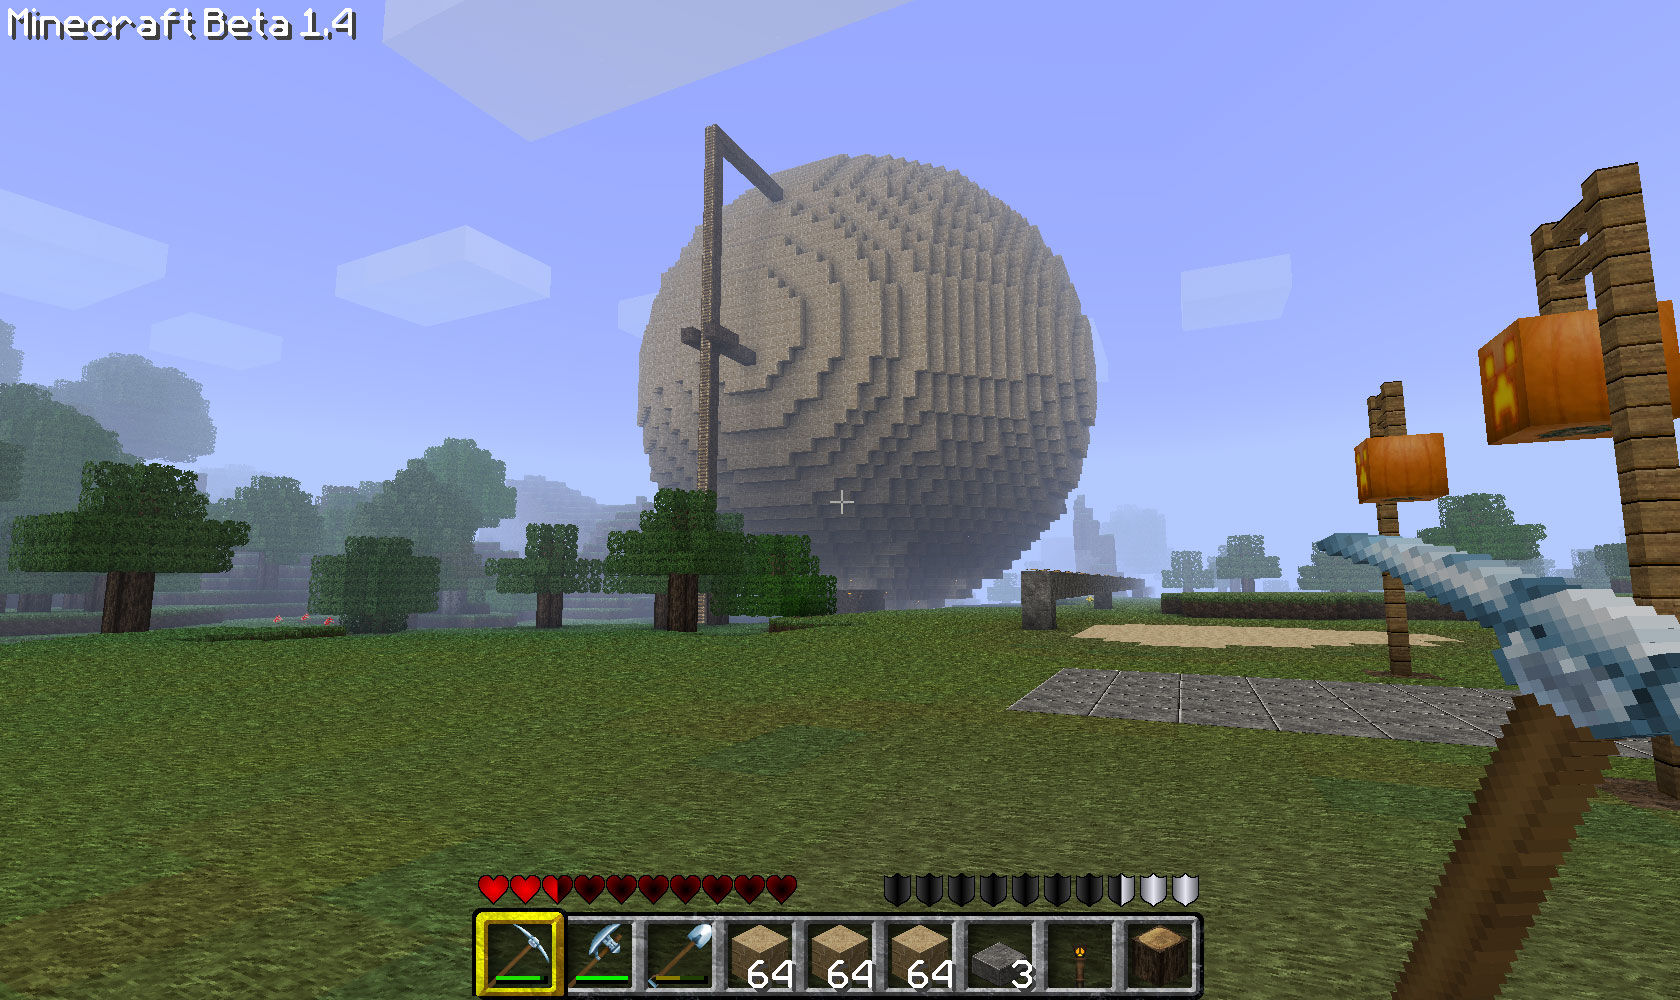 How to build a hollow sphere in minecraft